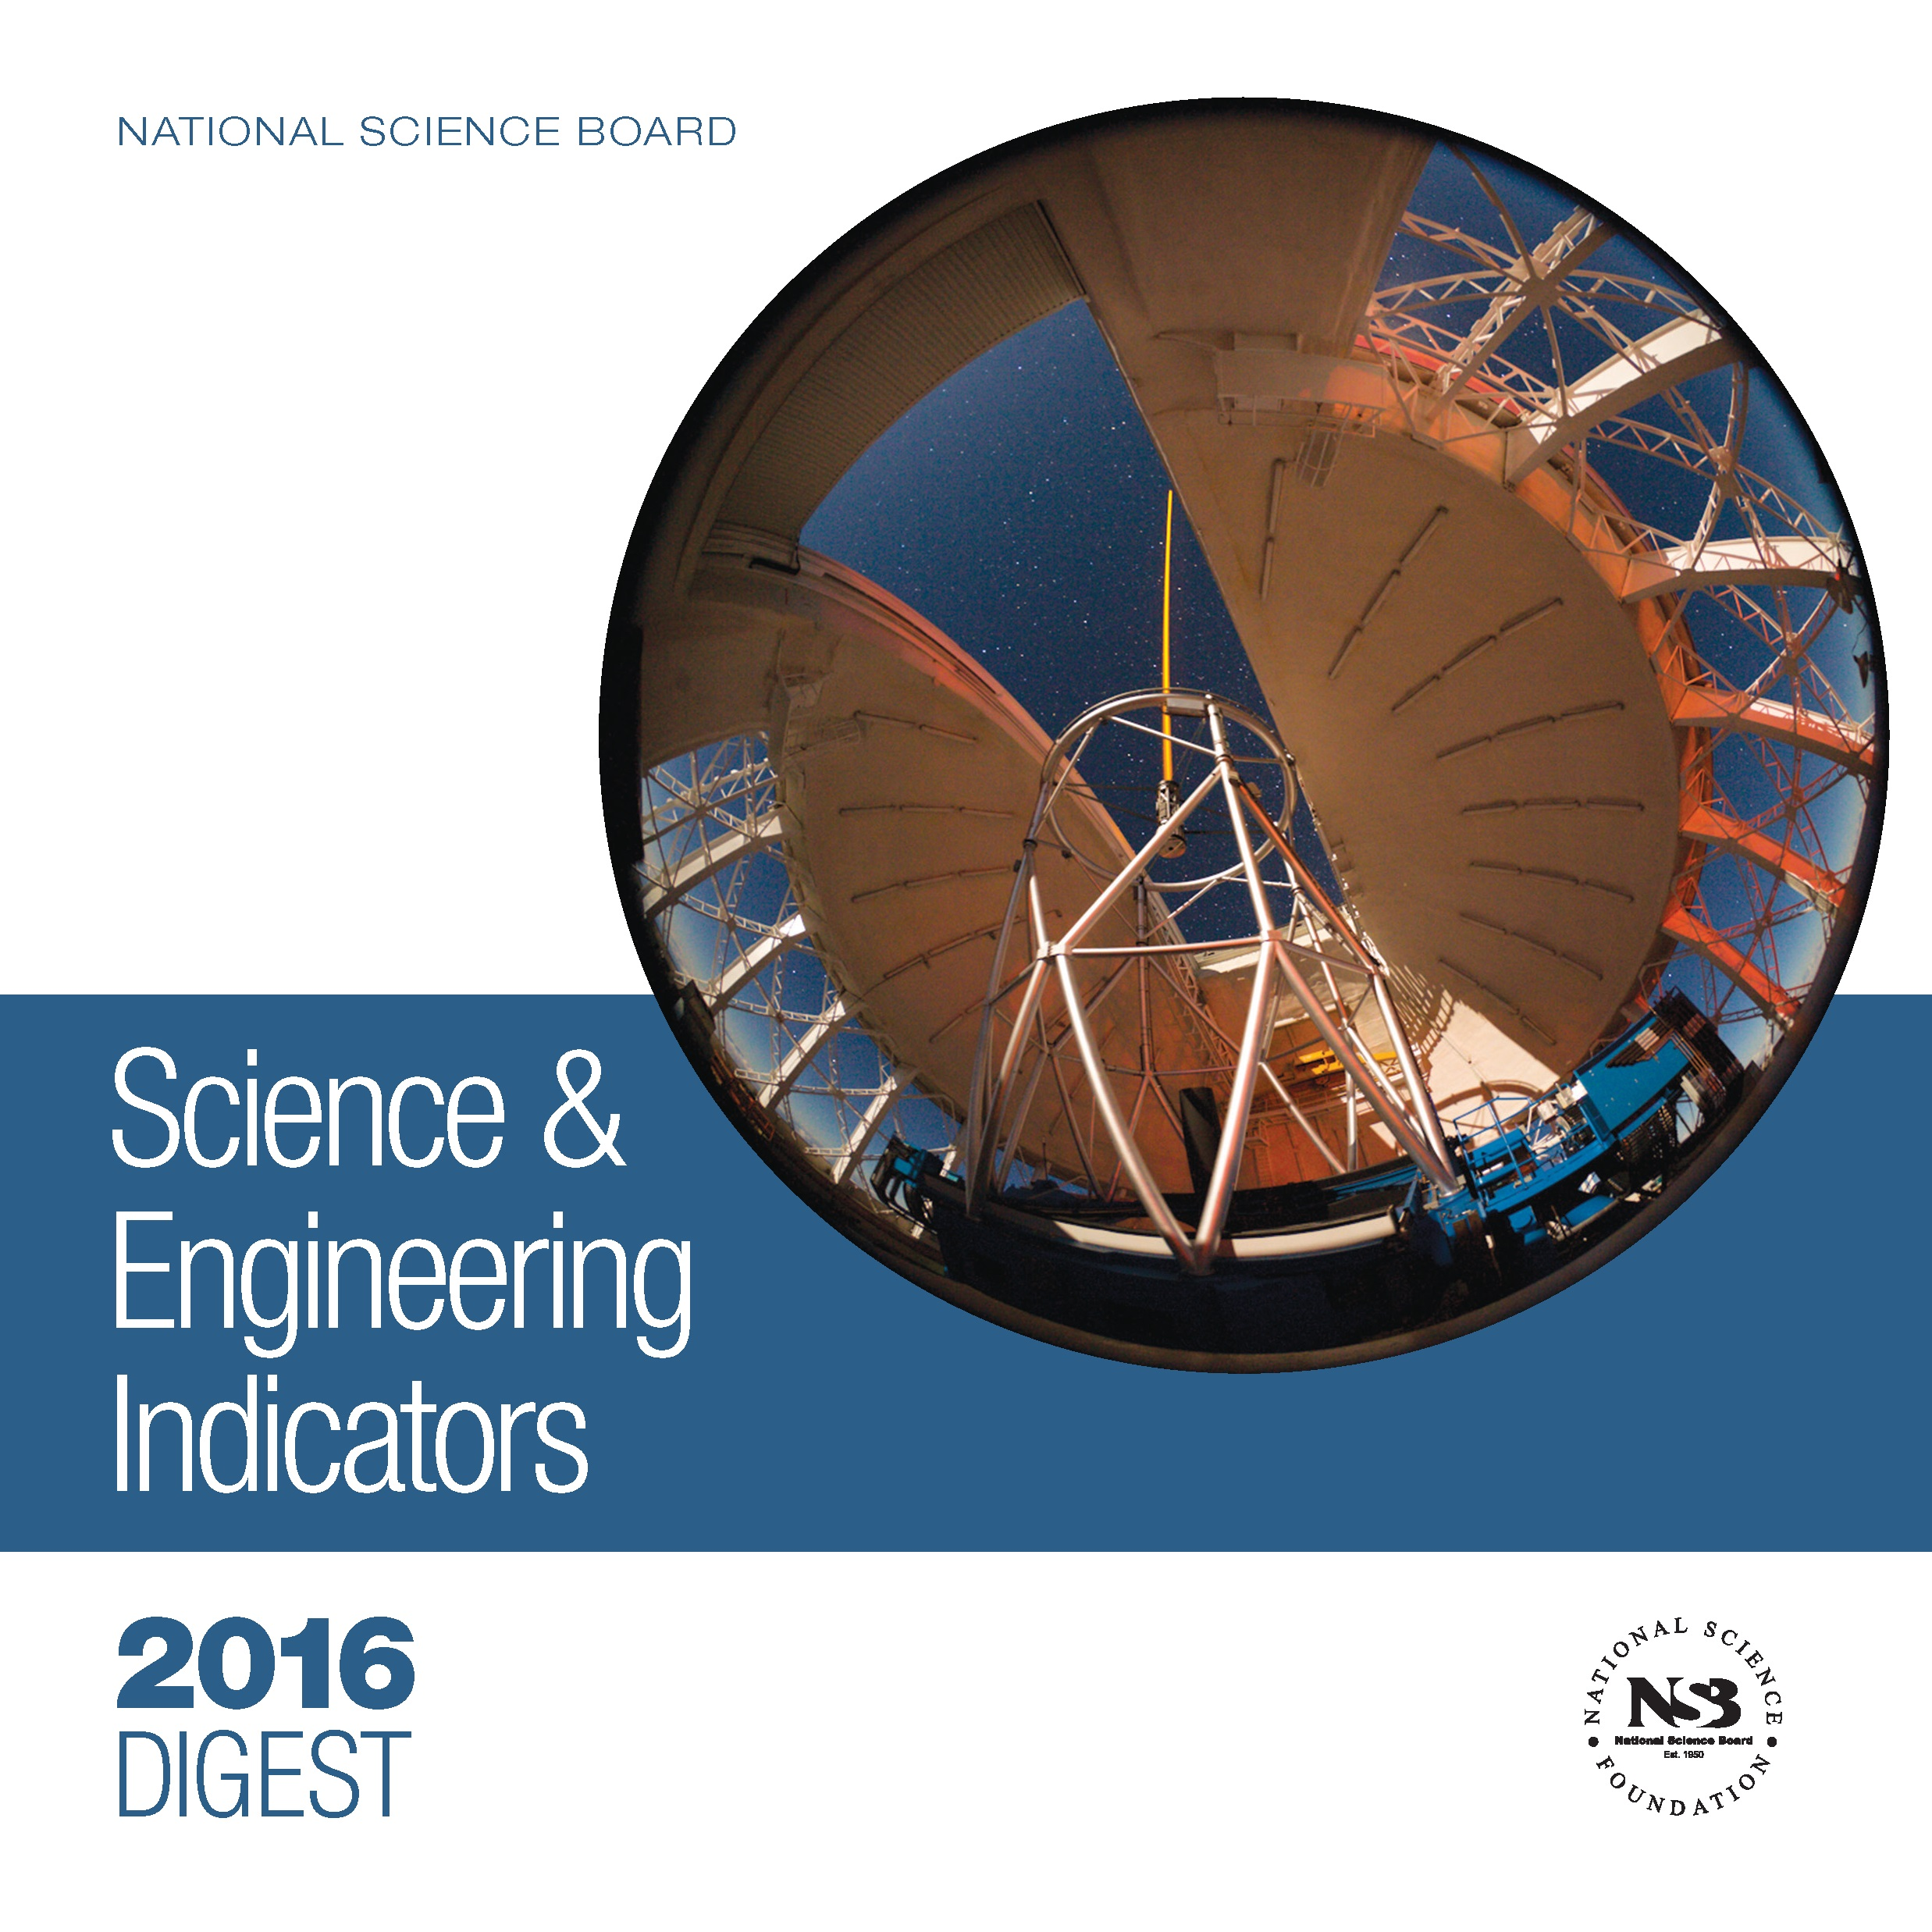 Science and Engineering Indicators 2016 Digest